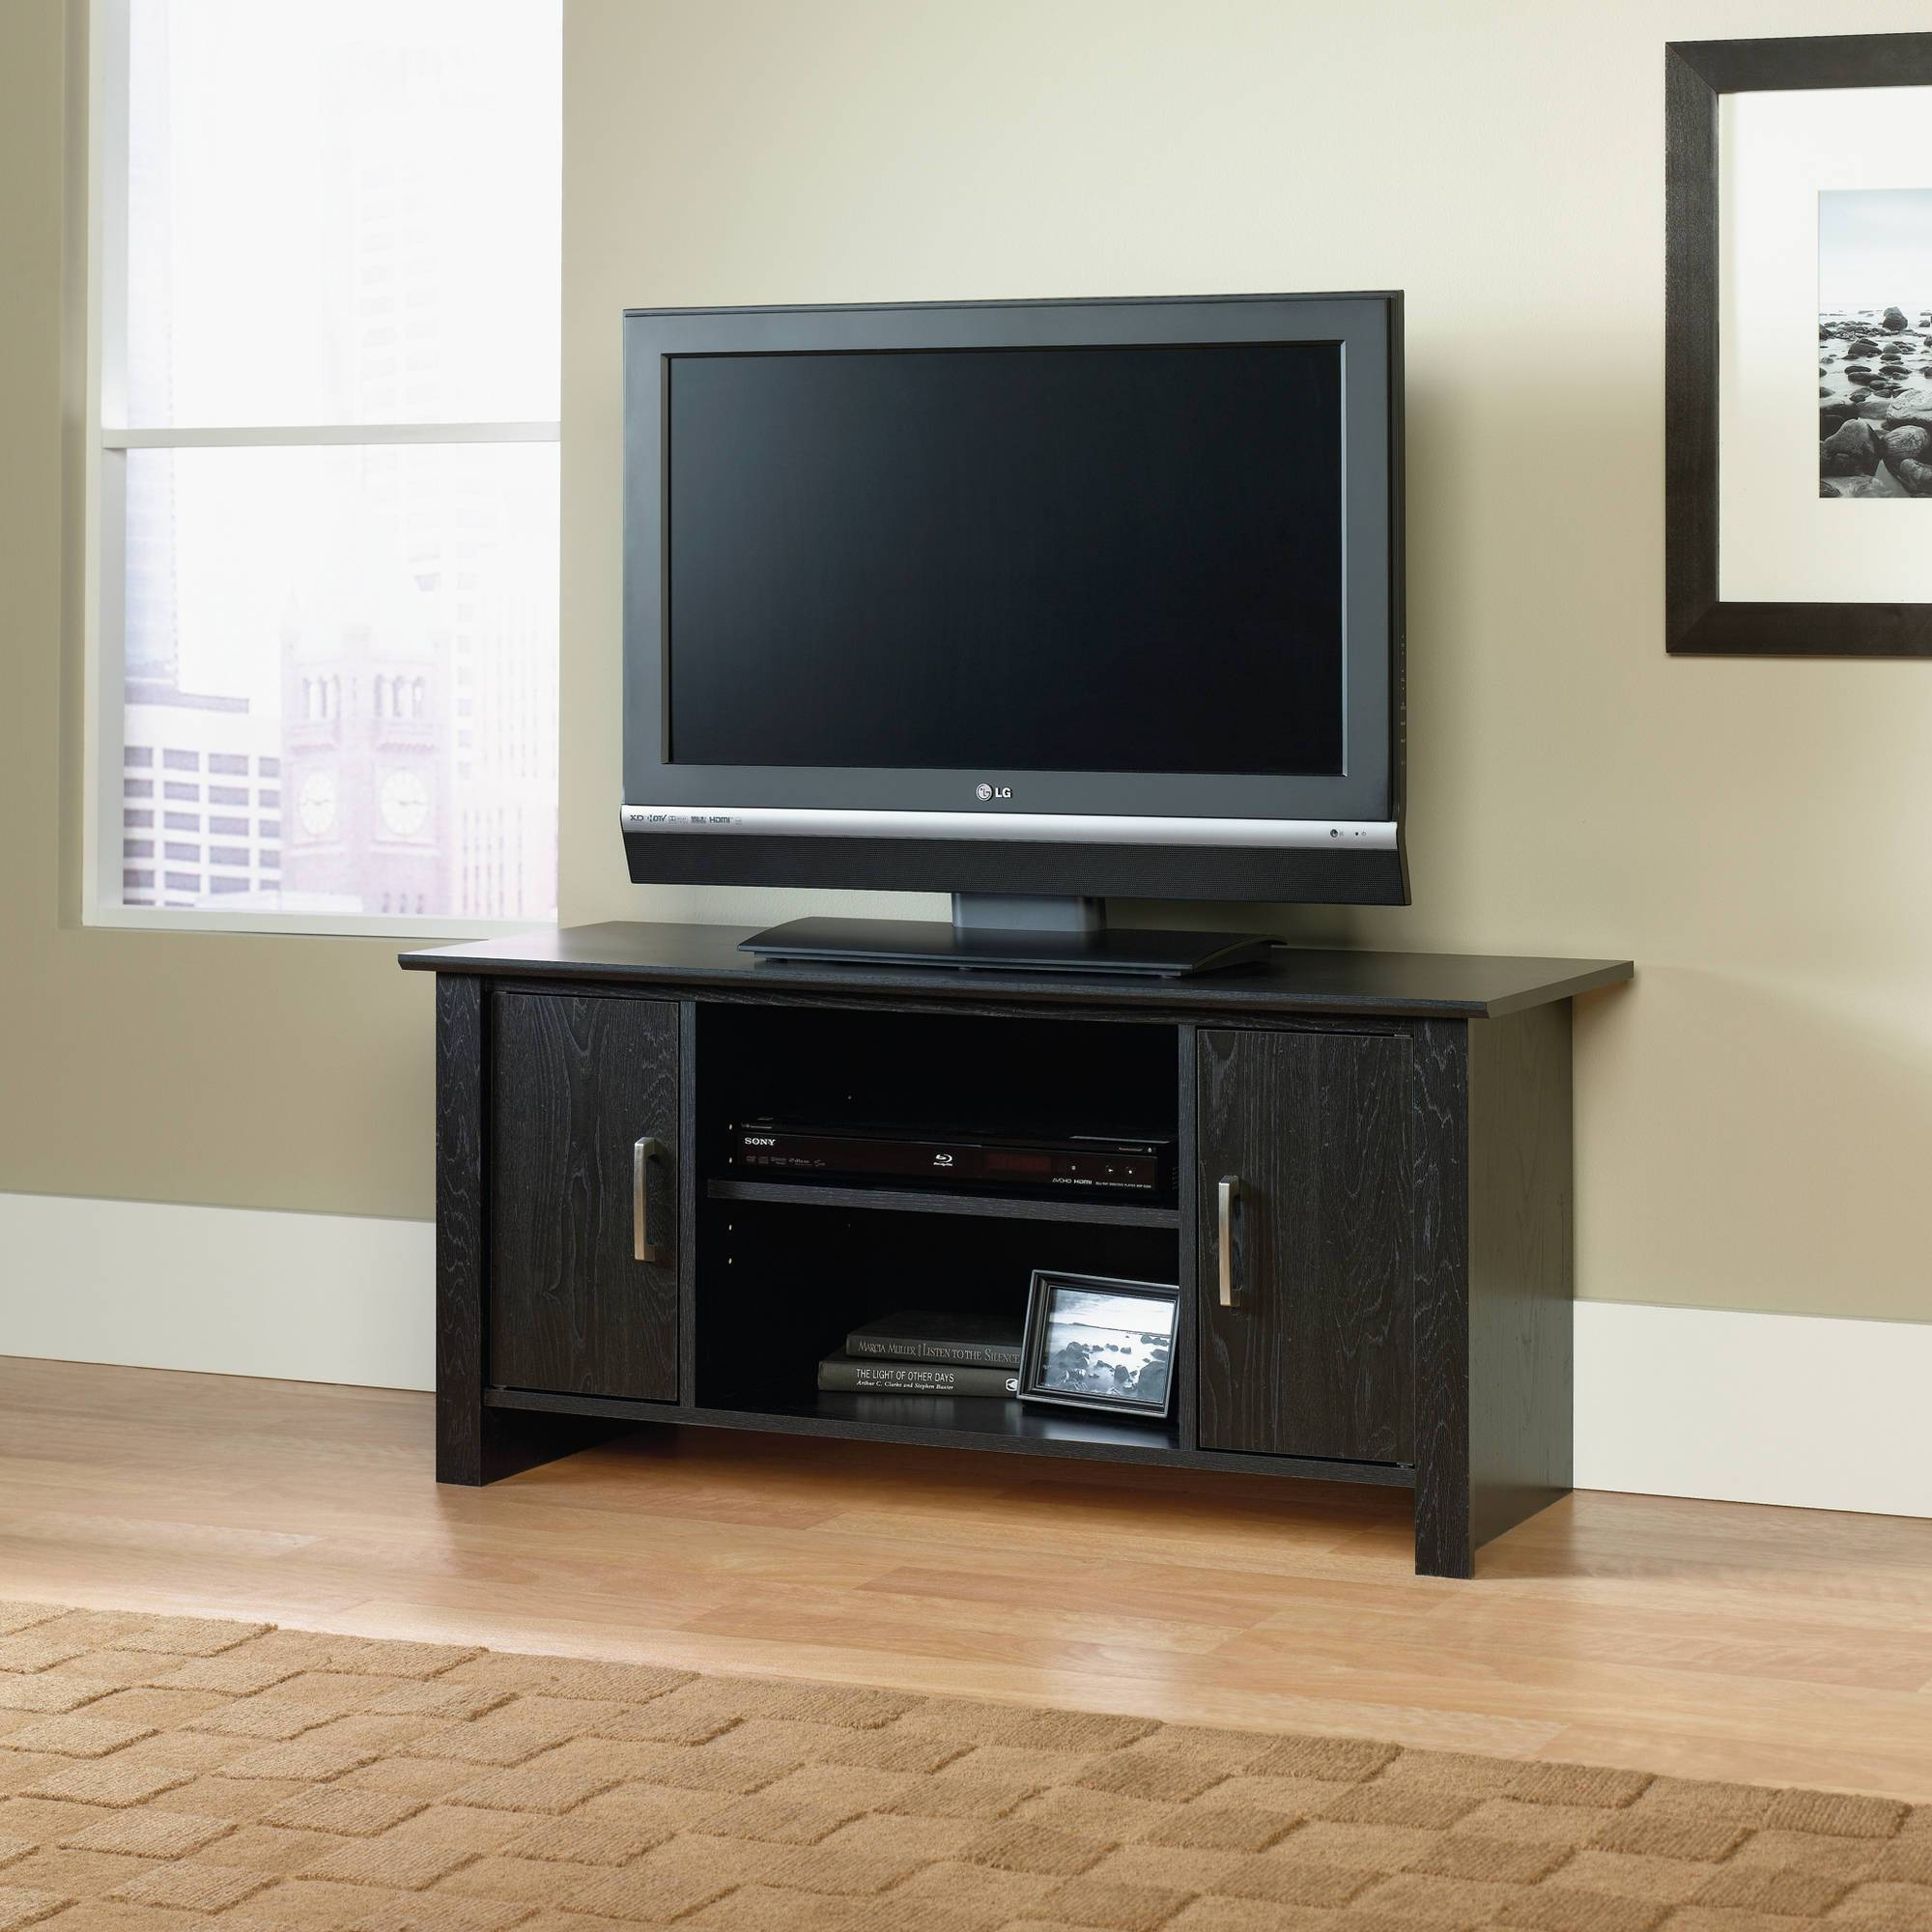 """Mainstays Tv Stand For Flat Screen Tvs Up To 47"""", Multiple Finish Intended For Tv Stands With Baskets (View 14 of 15)"""